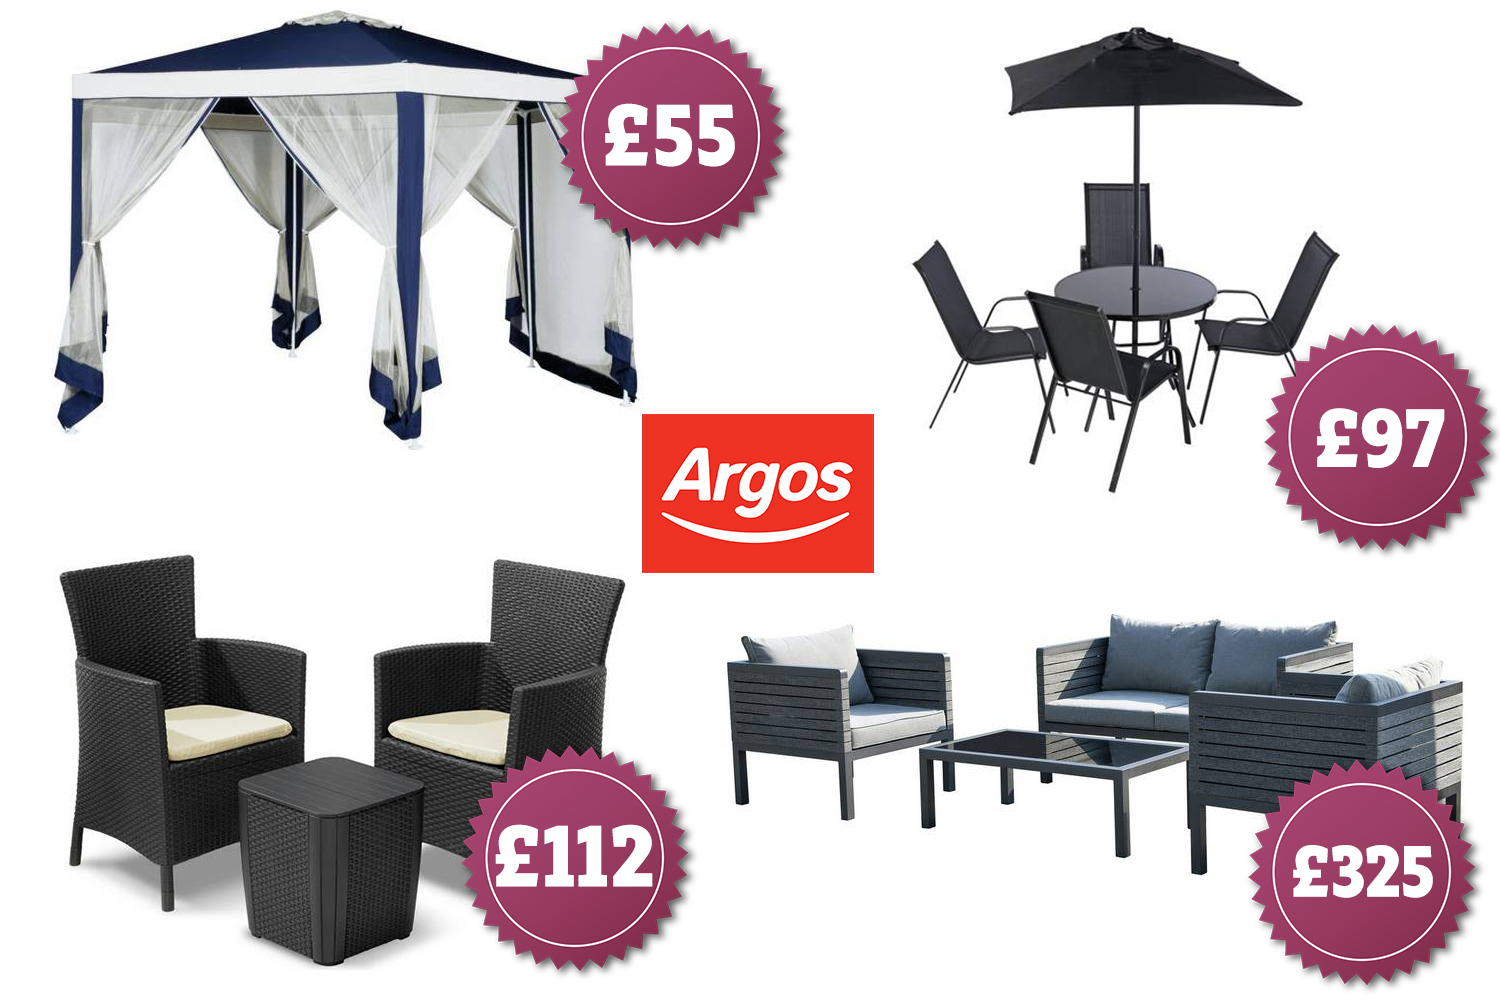 Argos Has A Huge Sale On Garden Furniture Including Sofa Sets Gazebos And Sun Loungers - Garden Furniture Clearance Argos